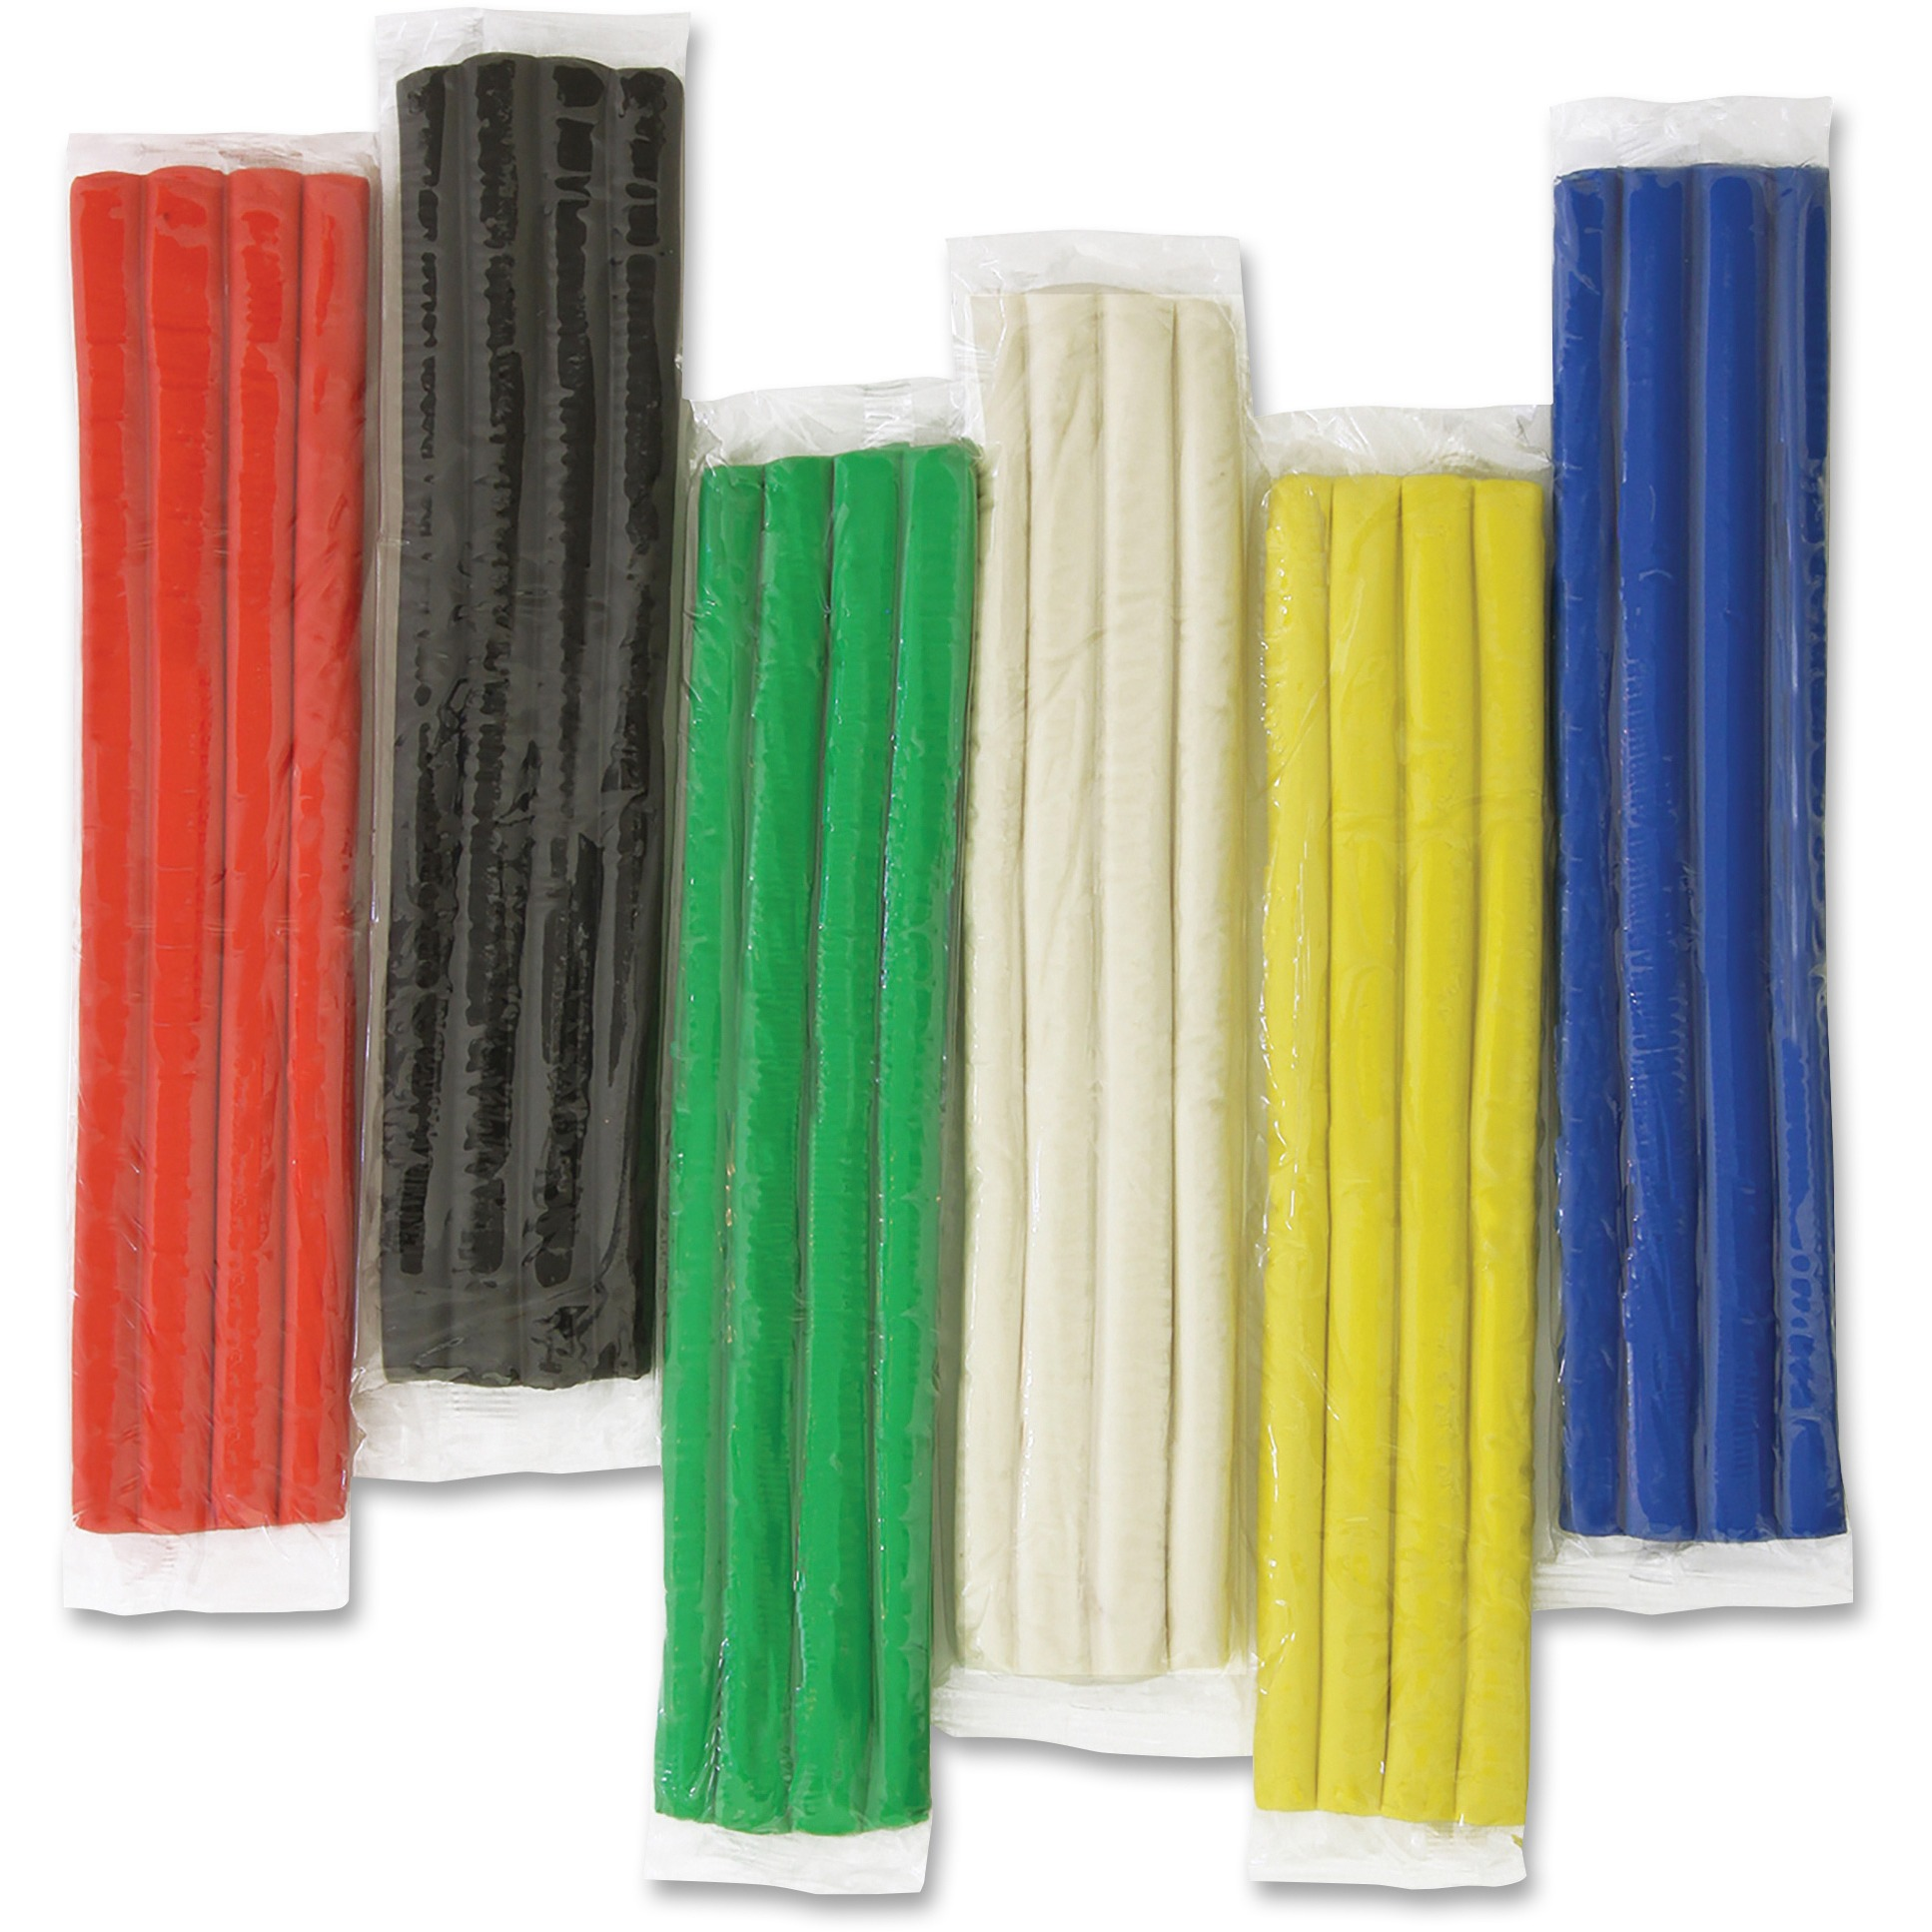 Creativity Street, CKC4080, Extruded Modeling Clay, 6 / Pack, Red,Blue,Green,Yellow,White,Black